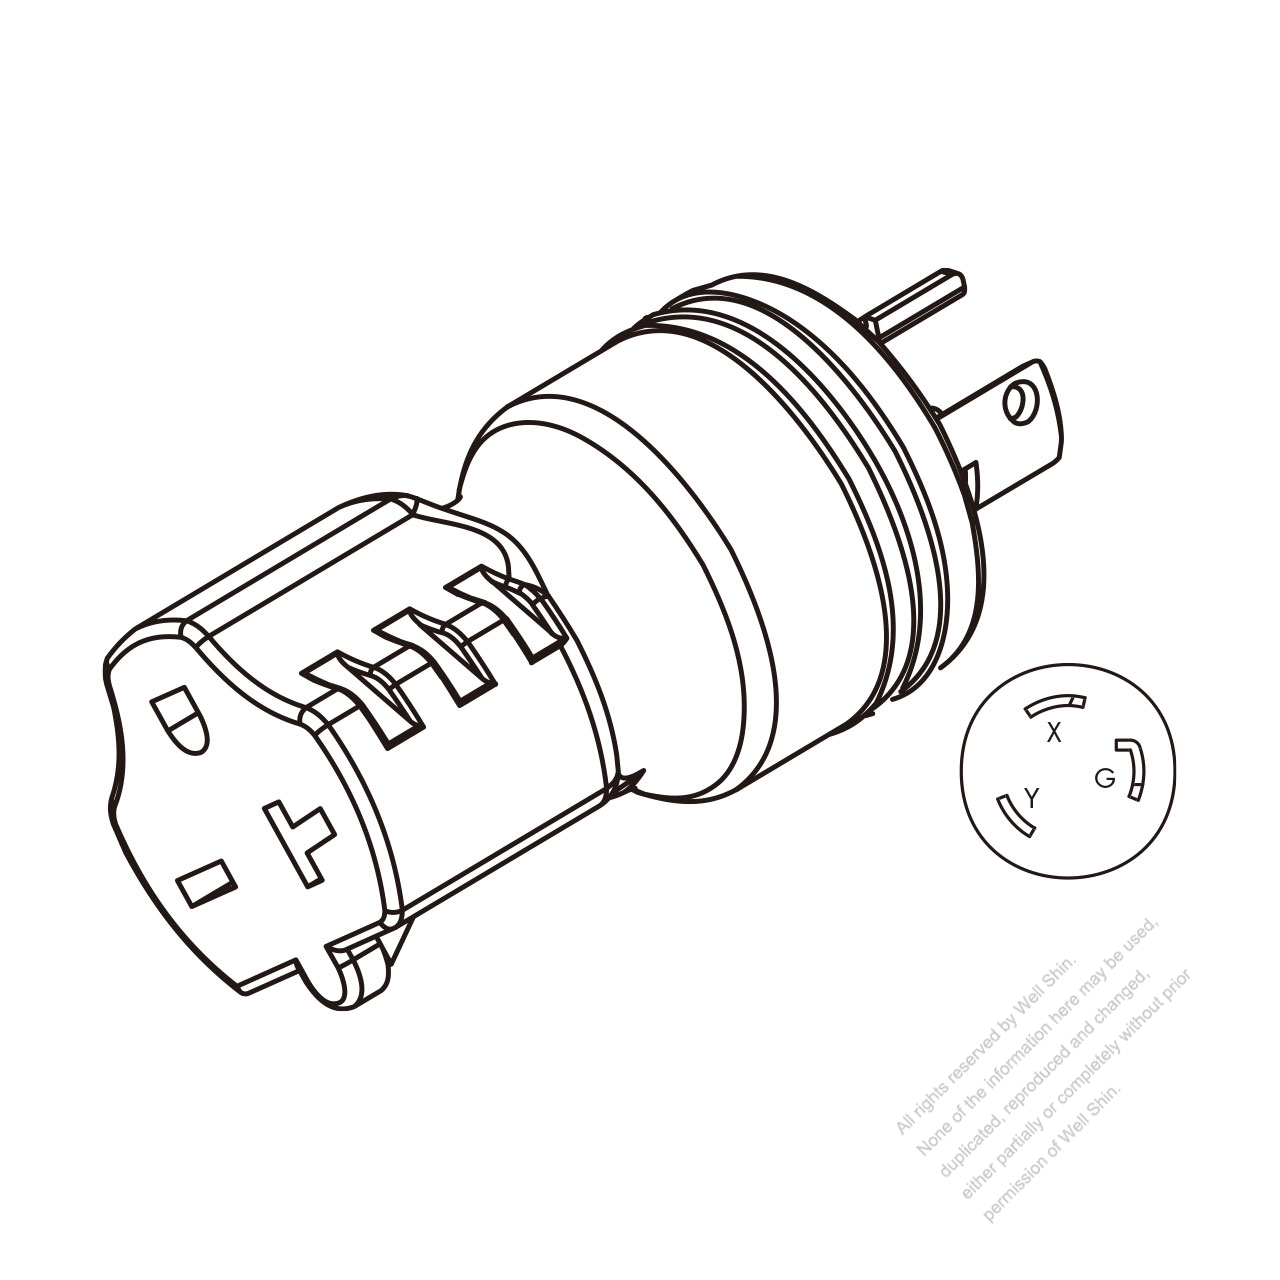 Simple Copper Wiring Diagram likewise 4 Wire Oven Plug Wiring further Kitchen Wiring Diagram S le furthermore Electric Stove Plug Wiring Diagram additionally 3 Prong Grounded Plug Wiring Diagram. on 220 stove plug wiring